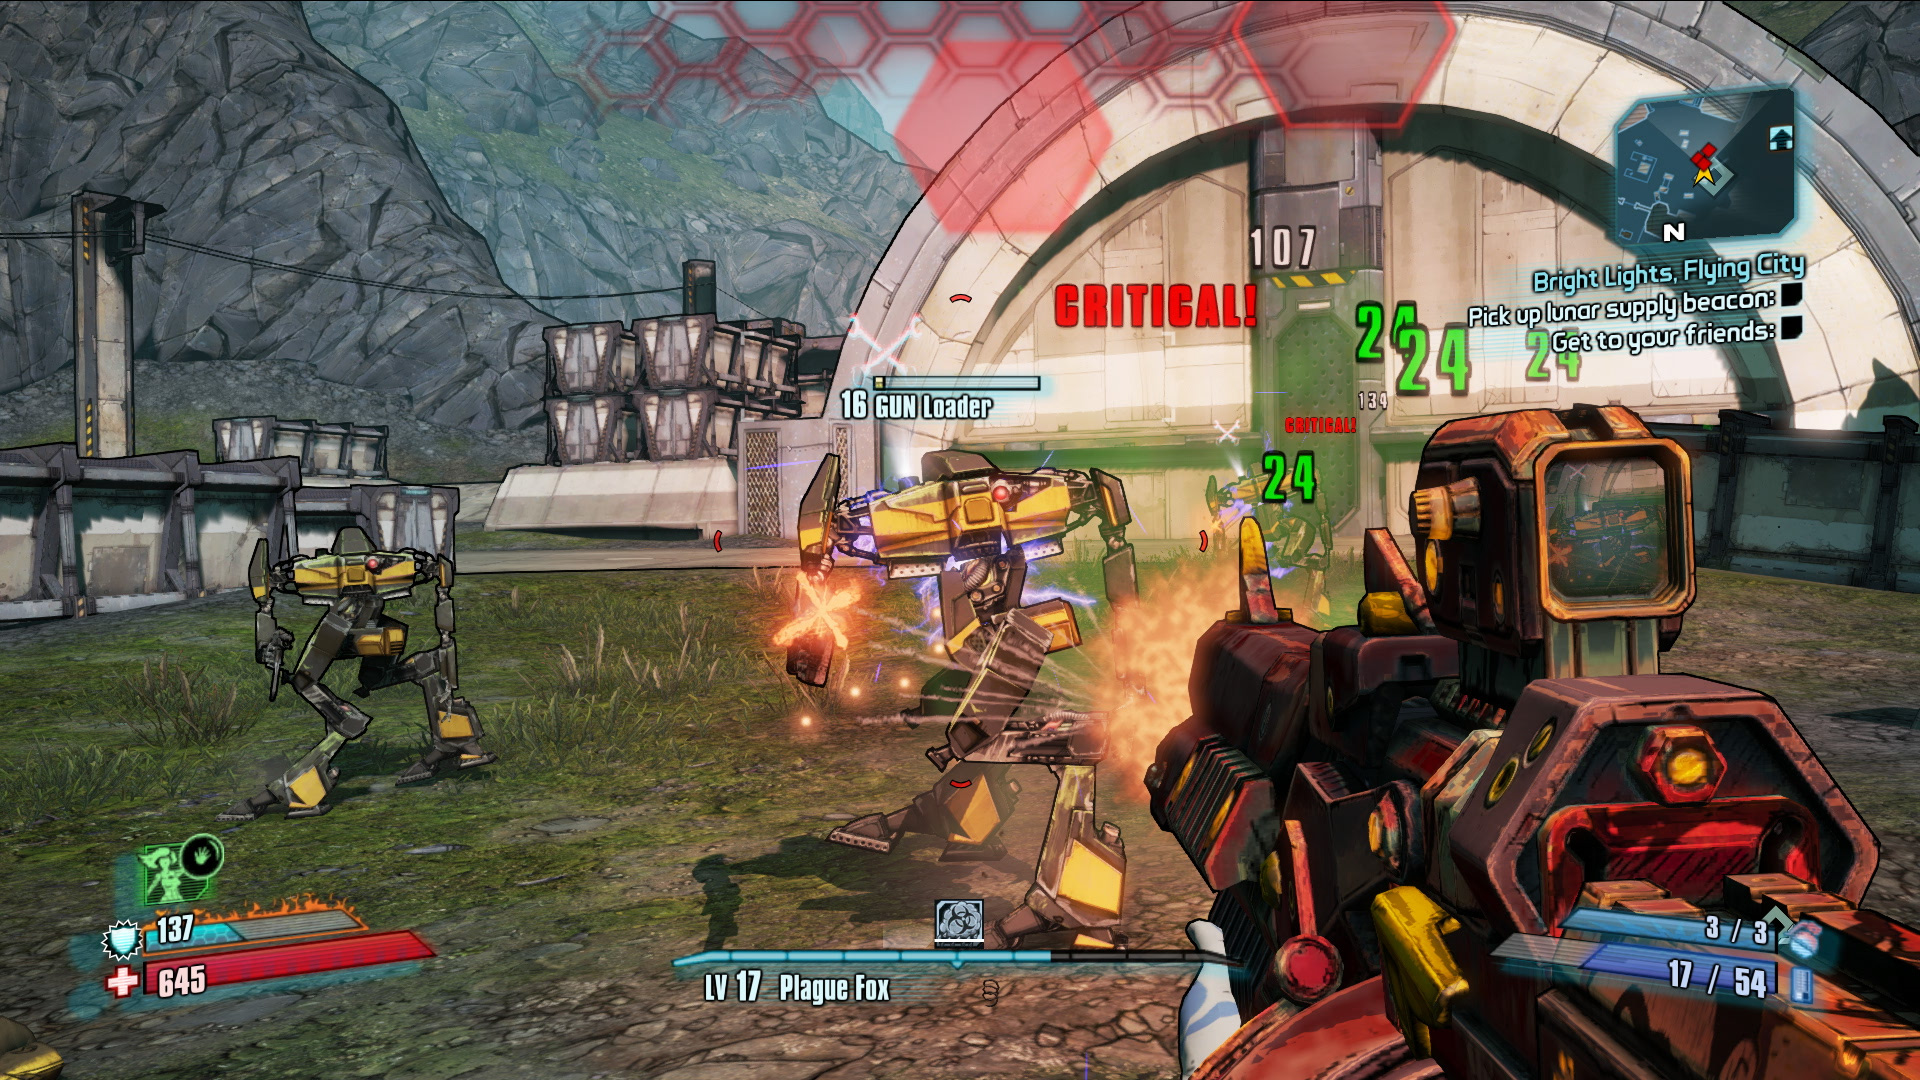 Borderlands The Handsome Collection Review - A Modern Time ... Borderlands 2 Review